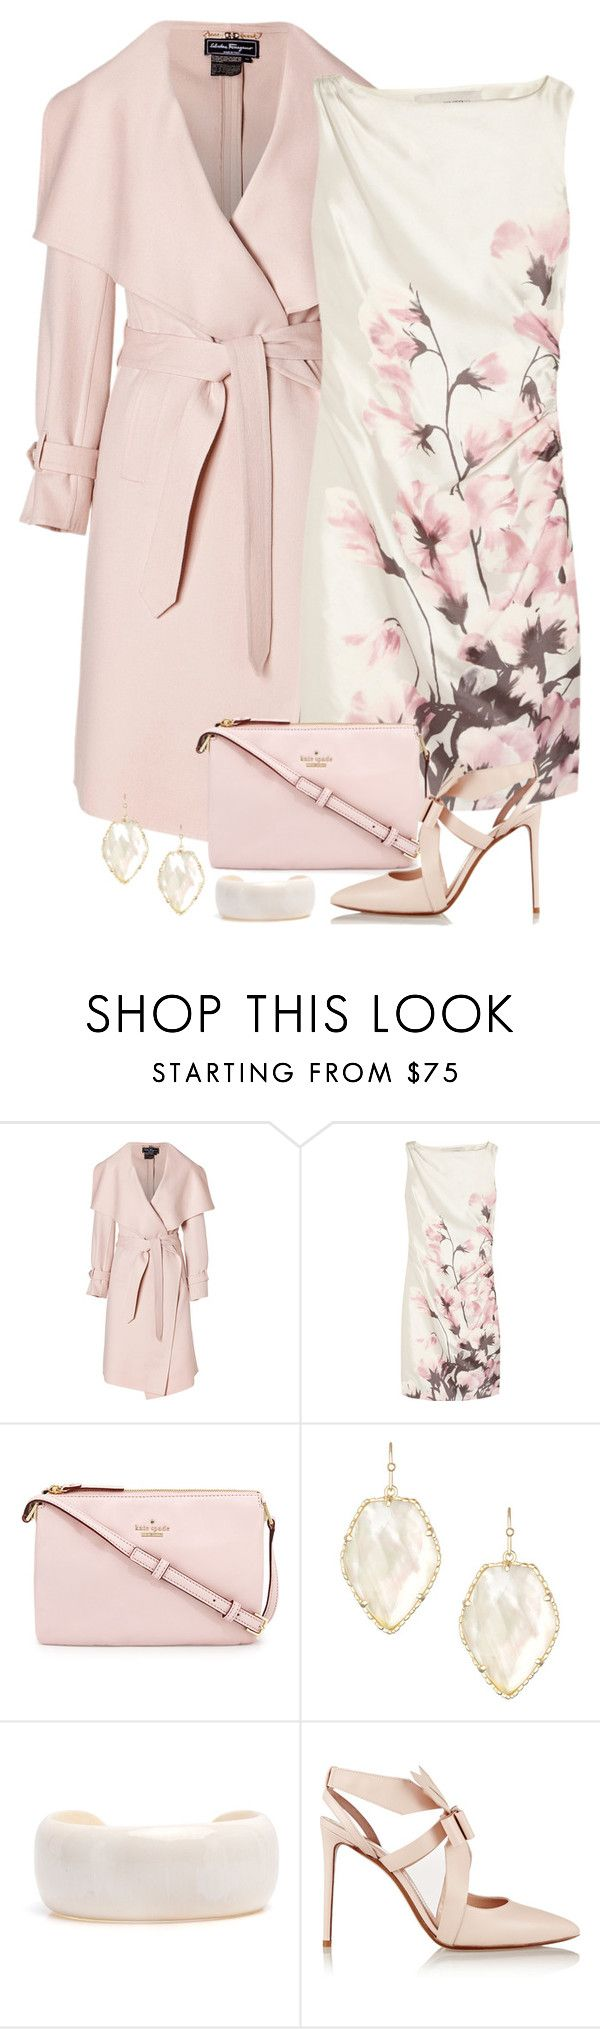 Flowers and Heels by terry-tlc on Polyvore featuring Valentino, Salvatore Ferragamo, Nicholas Kirkwood, Kate Spade and Kendra Scott